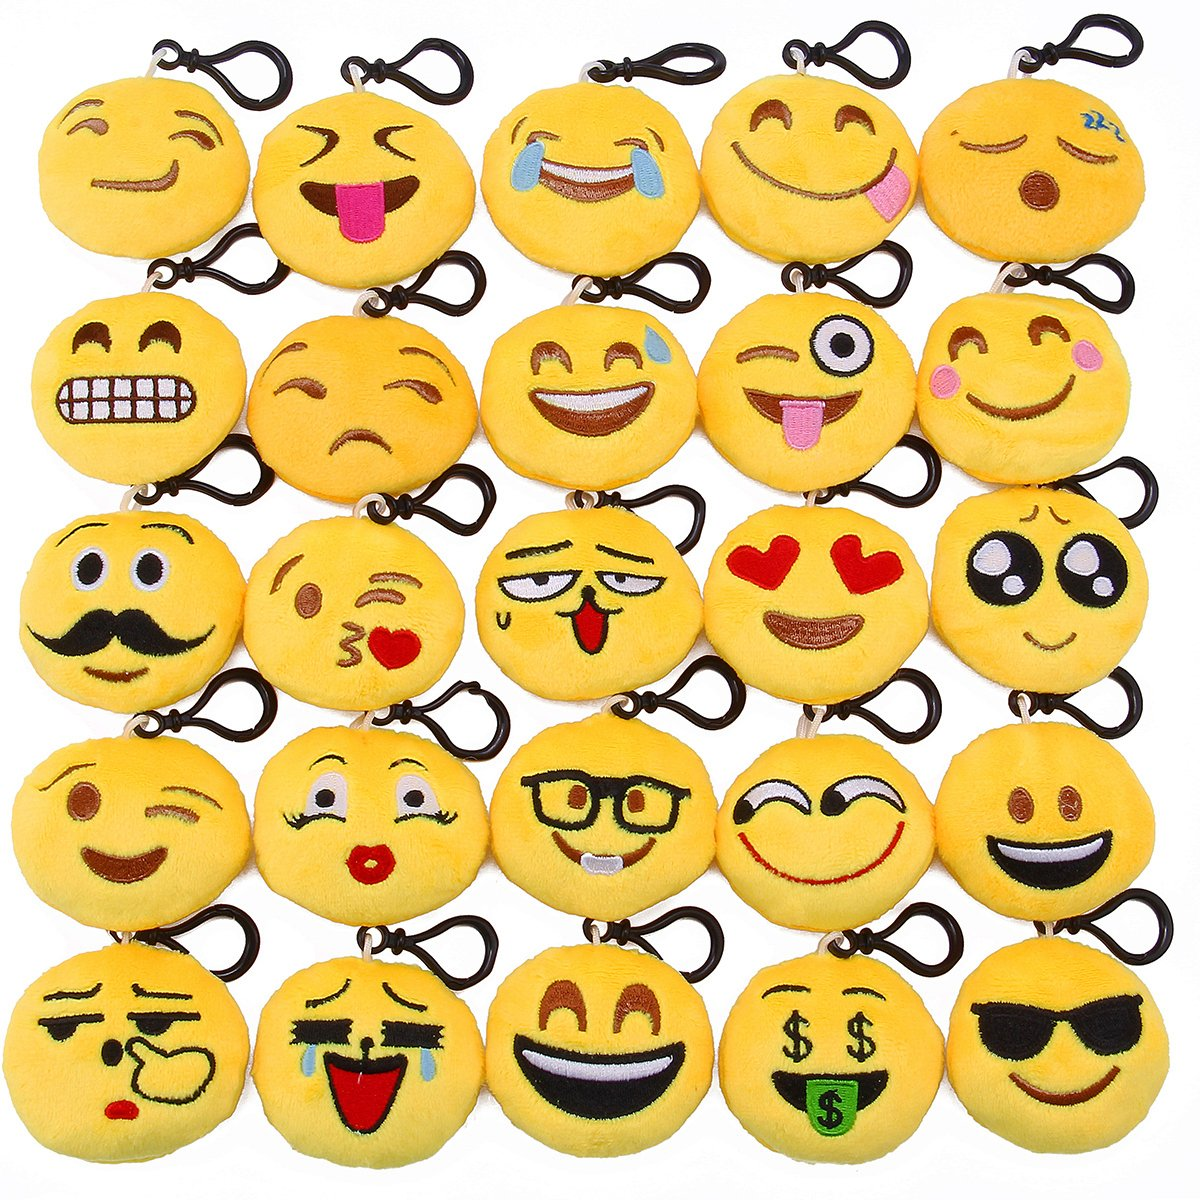 Lenink Emoji Party Supplies,25 Pack Emoji Keychain,Mini Plush Emoji Pillows,Emoji Party Favors for Kids Backpacks and Bags Decorations